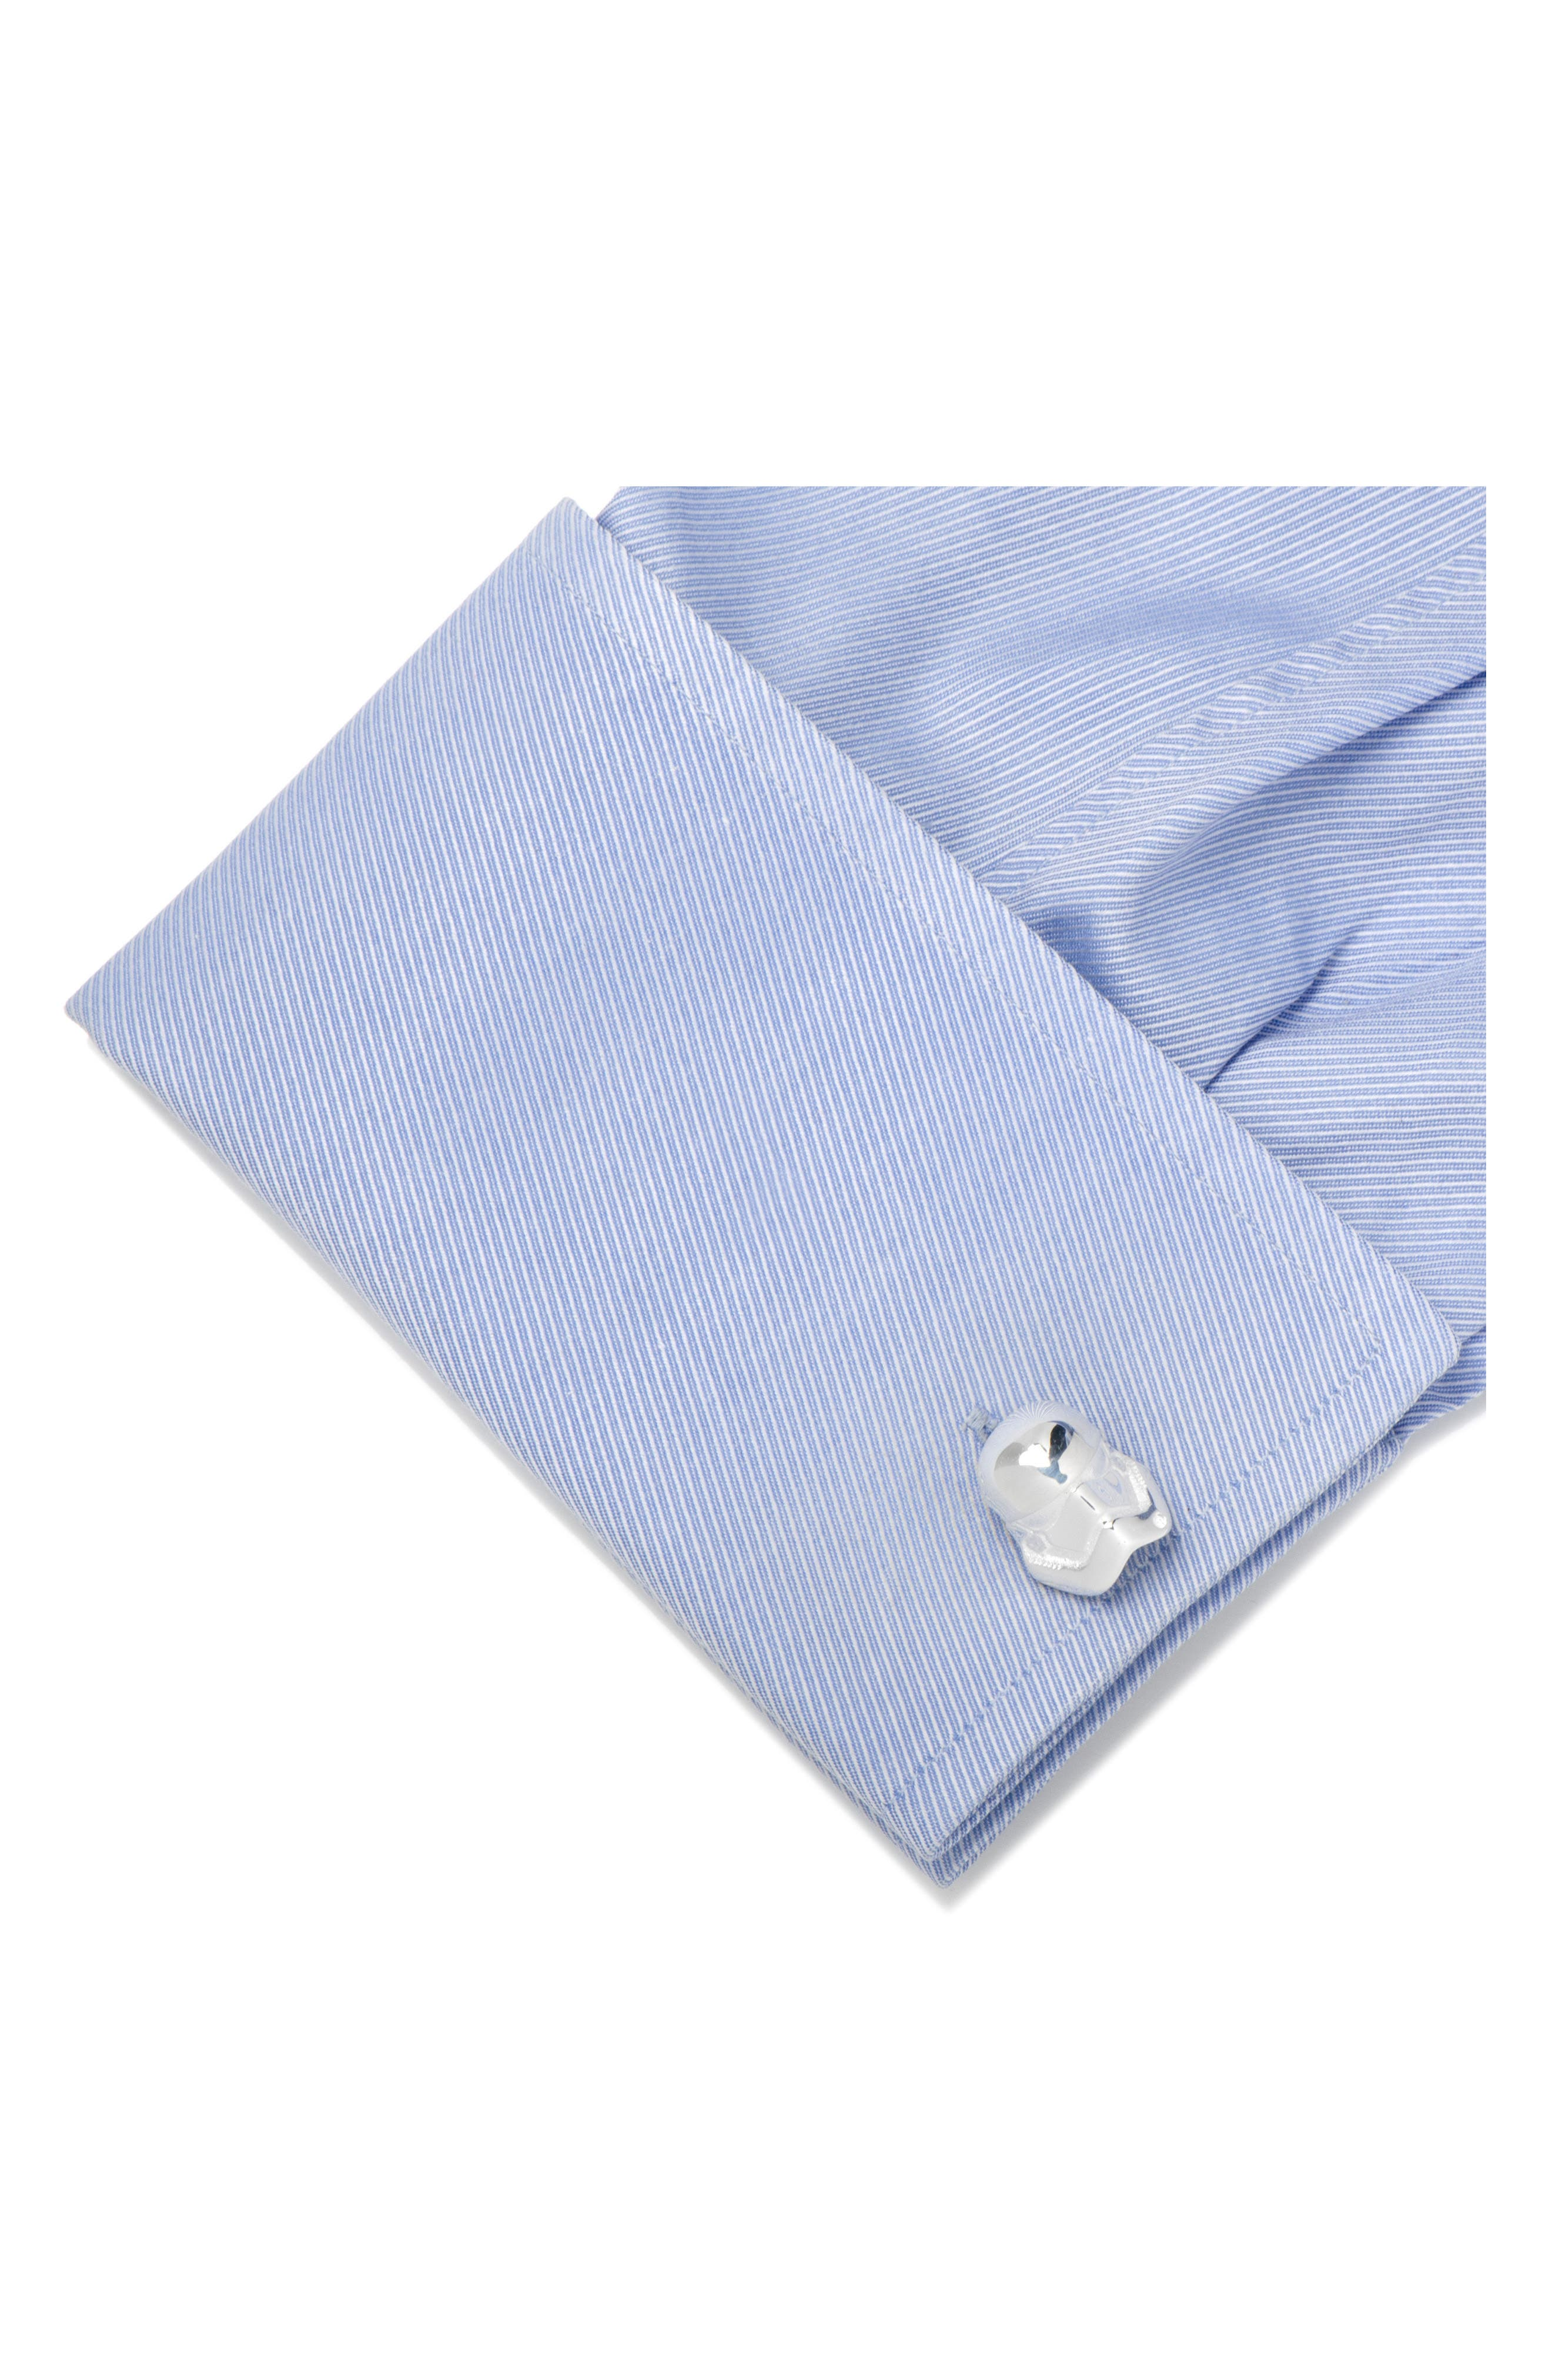 Star Wars<sup>™</sup> Stormtrooper Cuff Links,                             Alternate thumbnail 2, color,                             040